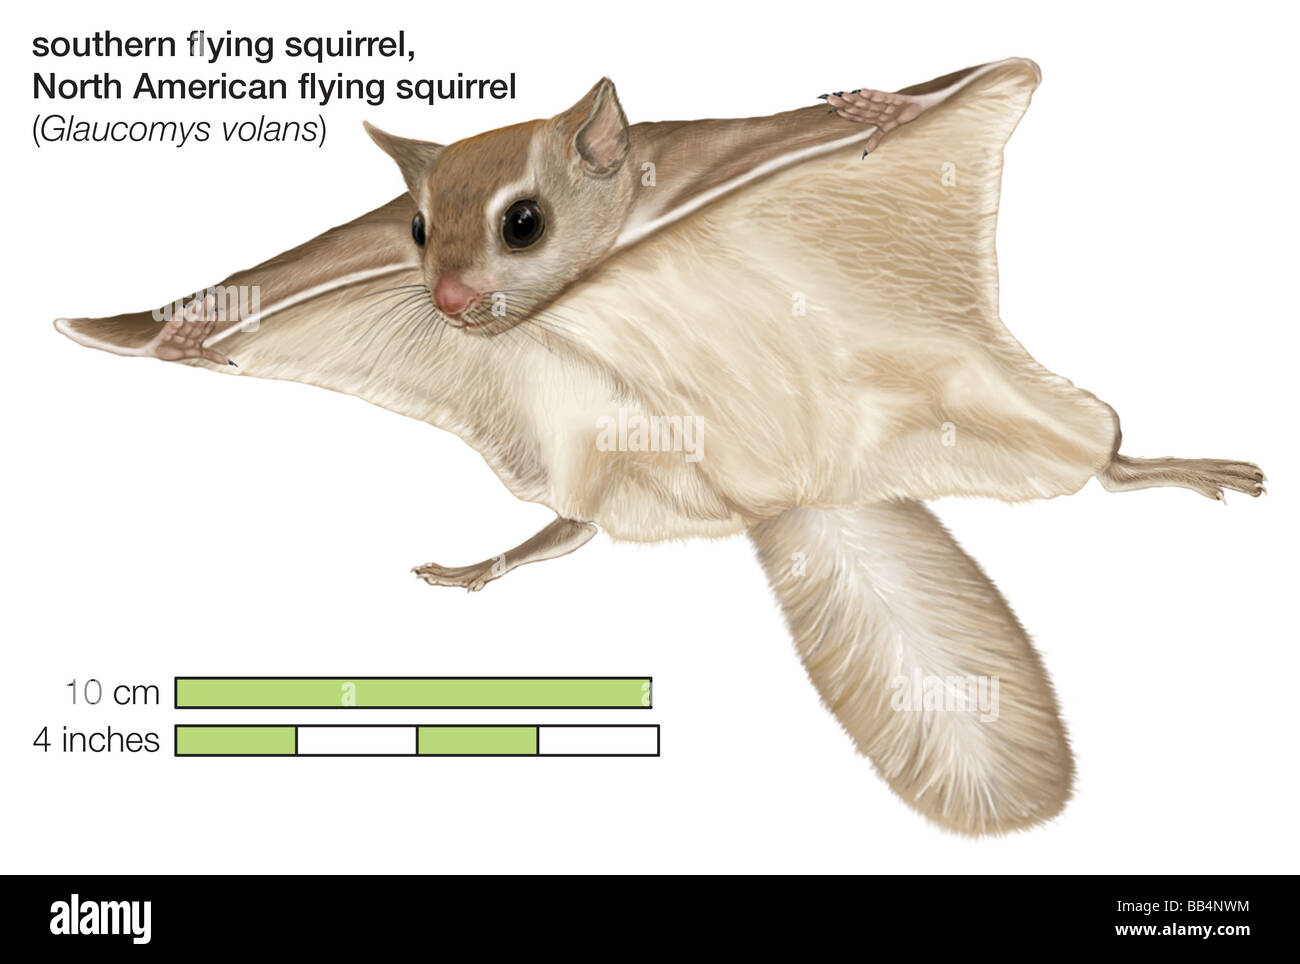 North American southern flying squirrel (Glaucomys volans) - Stock Image